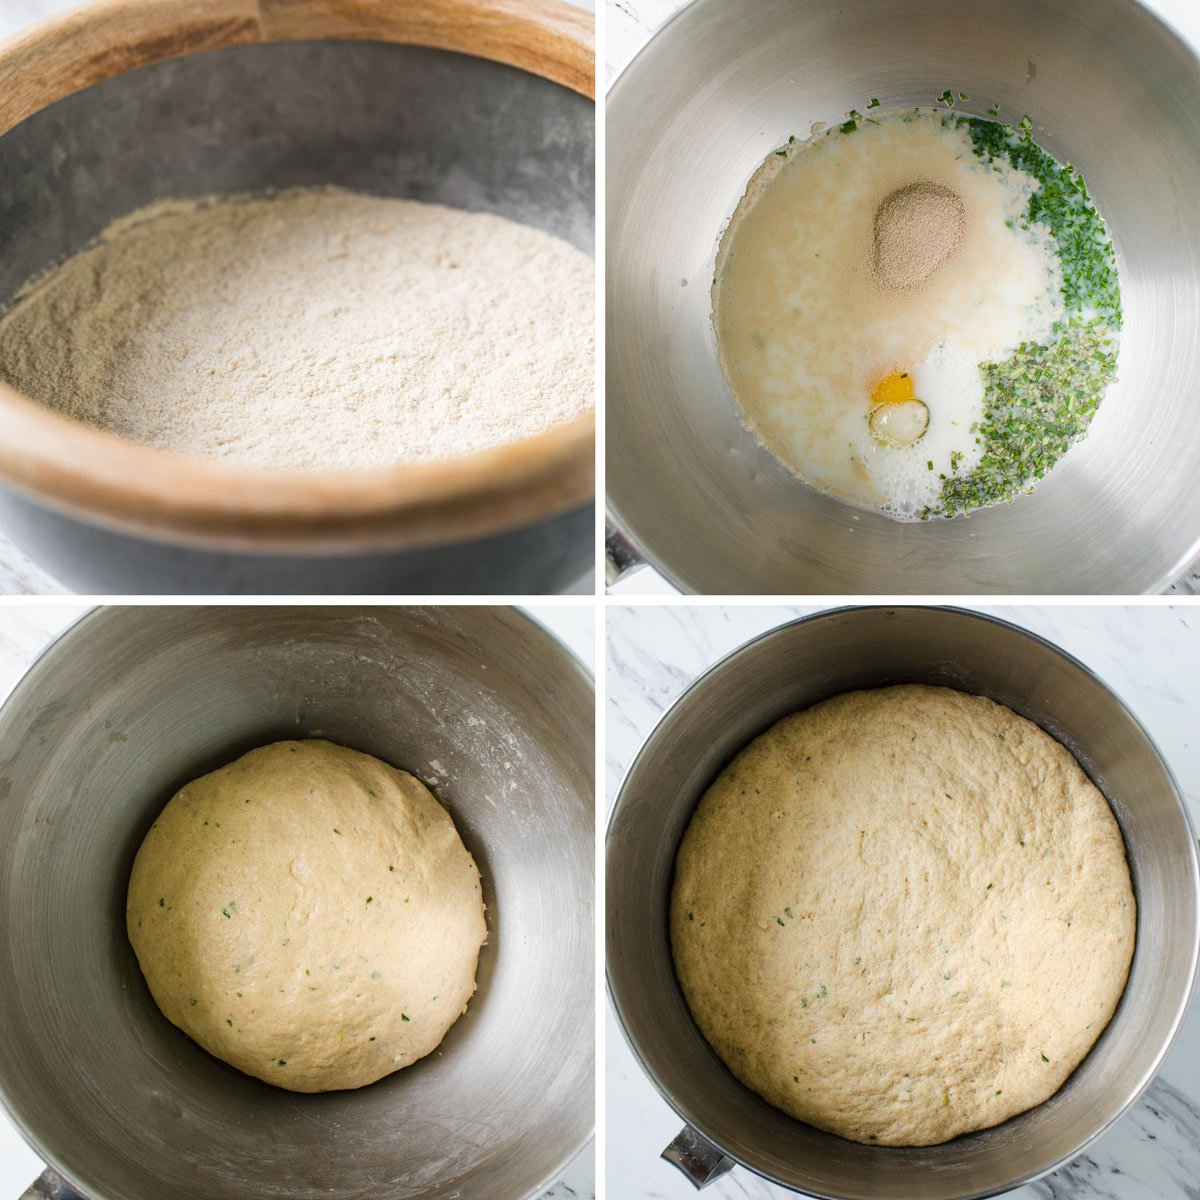 Preparing whole wheat dough for making healthy dinner rolls.